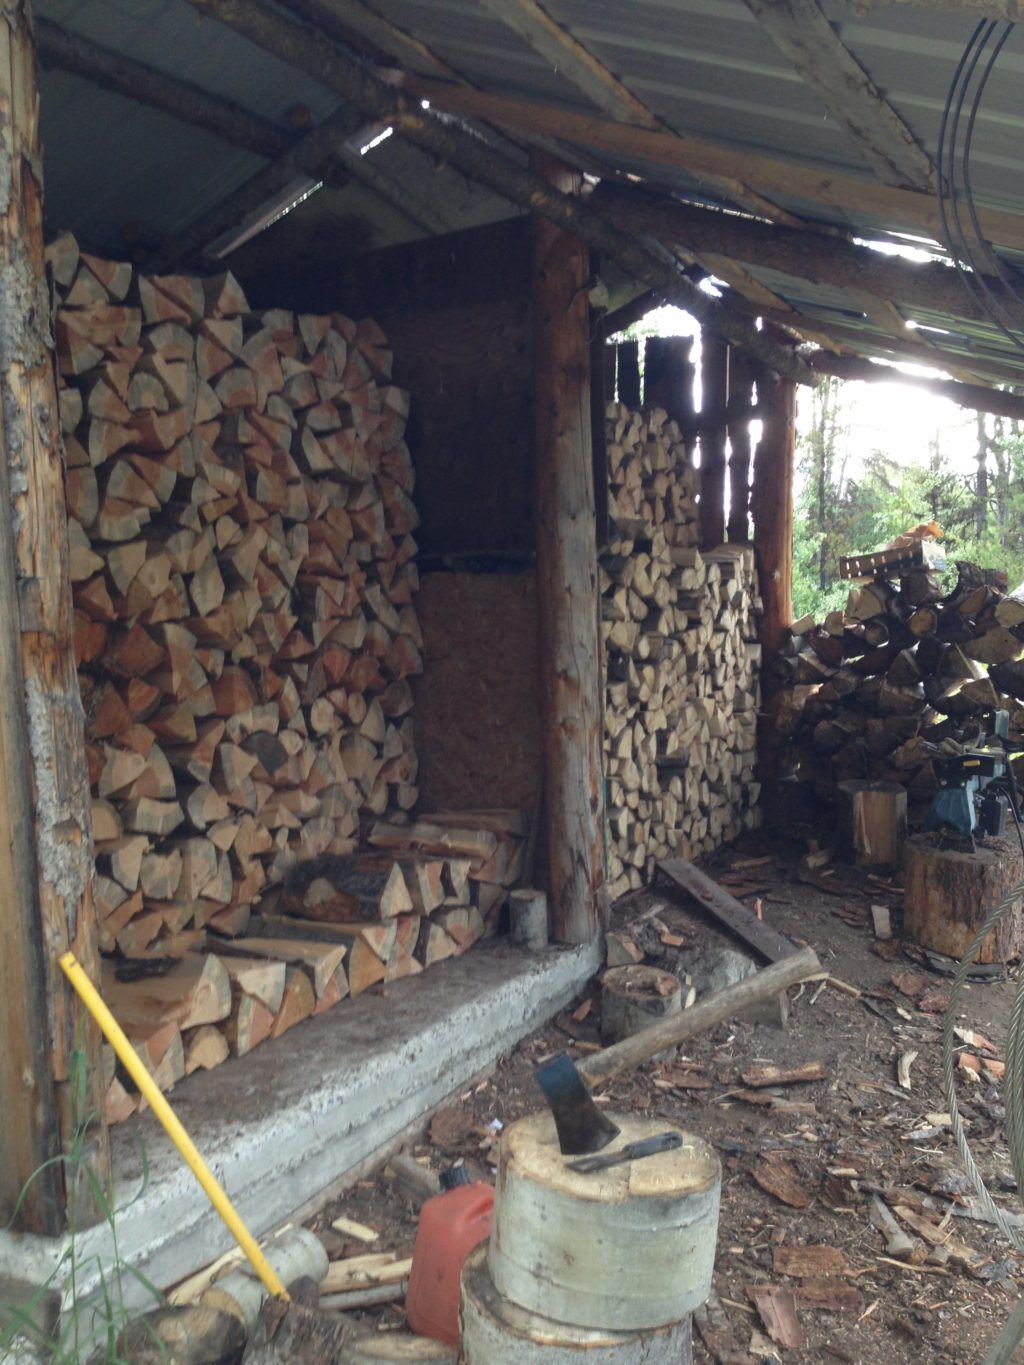 finding free firewood, heating with wood, woodstove